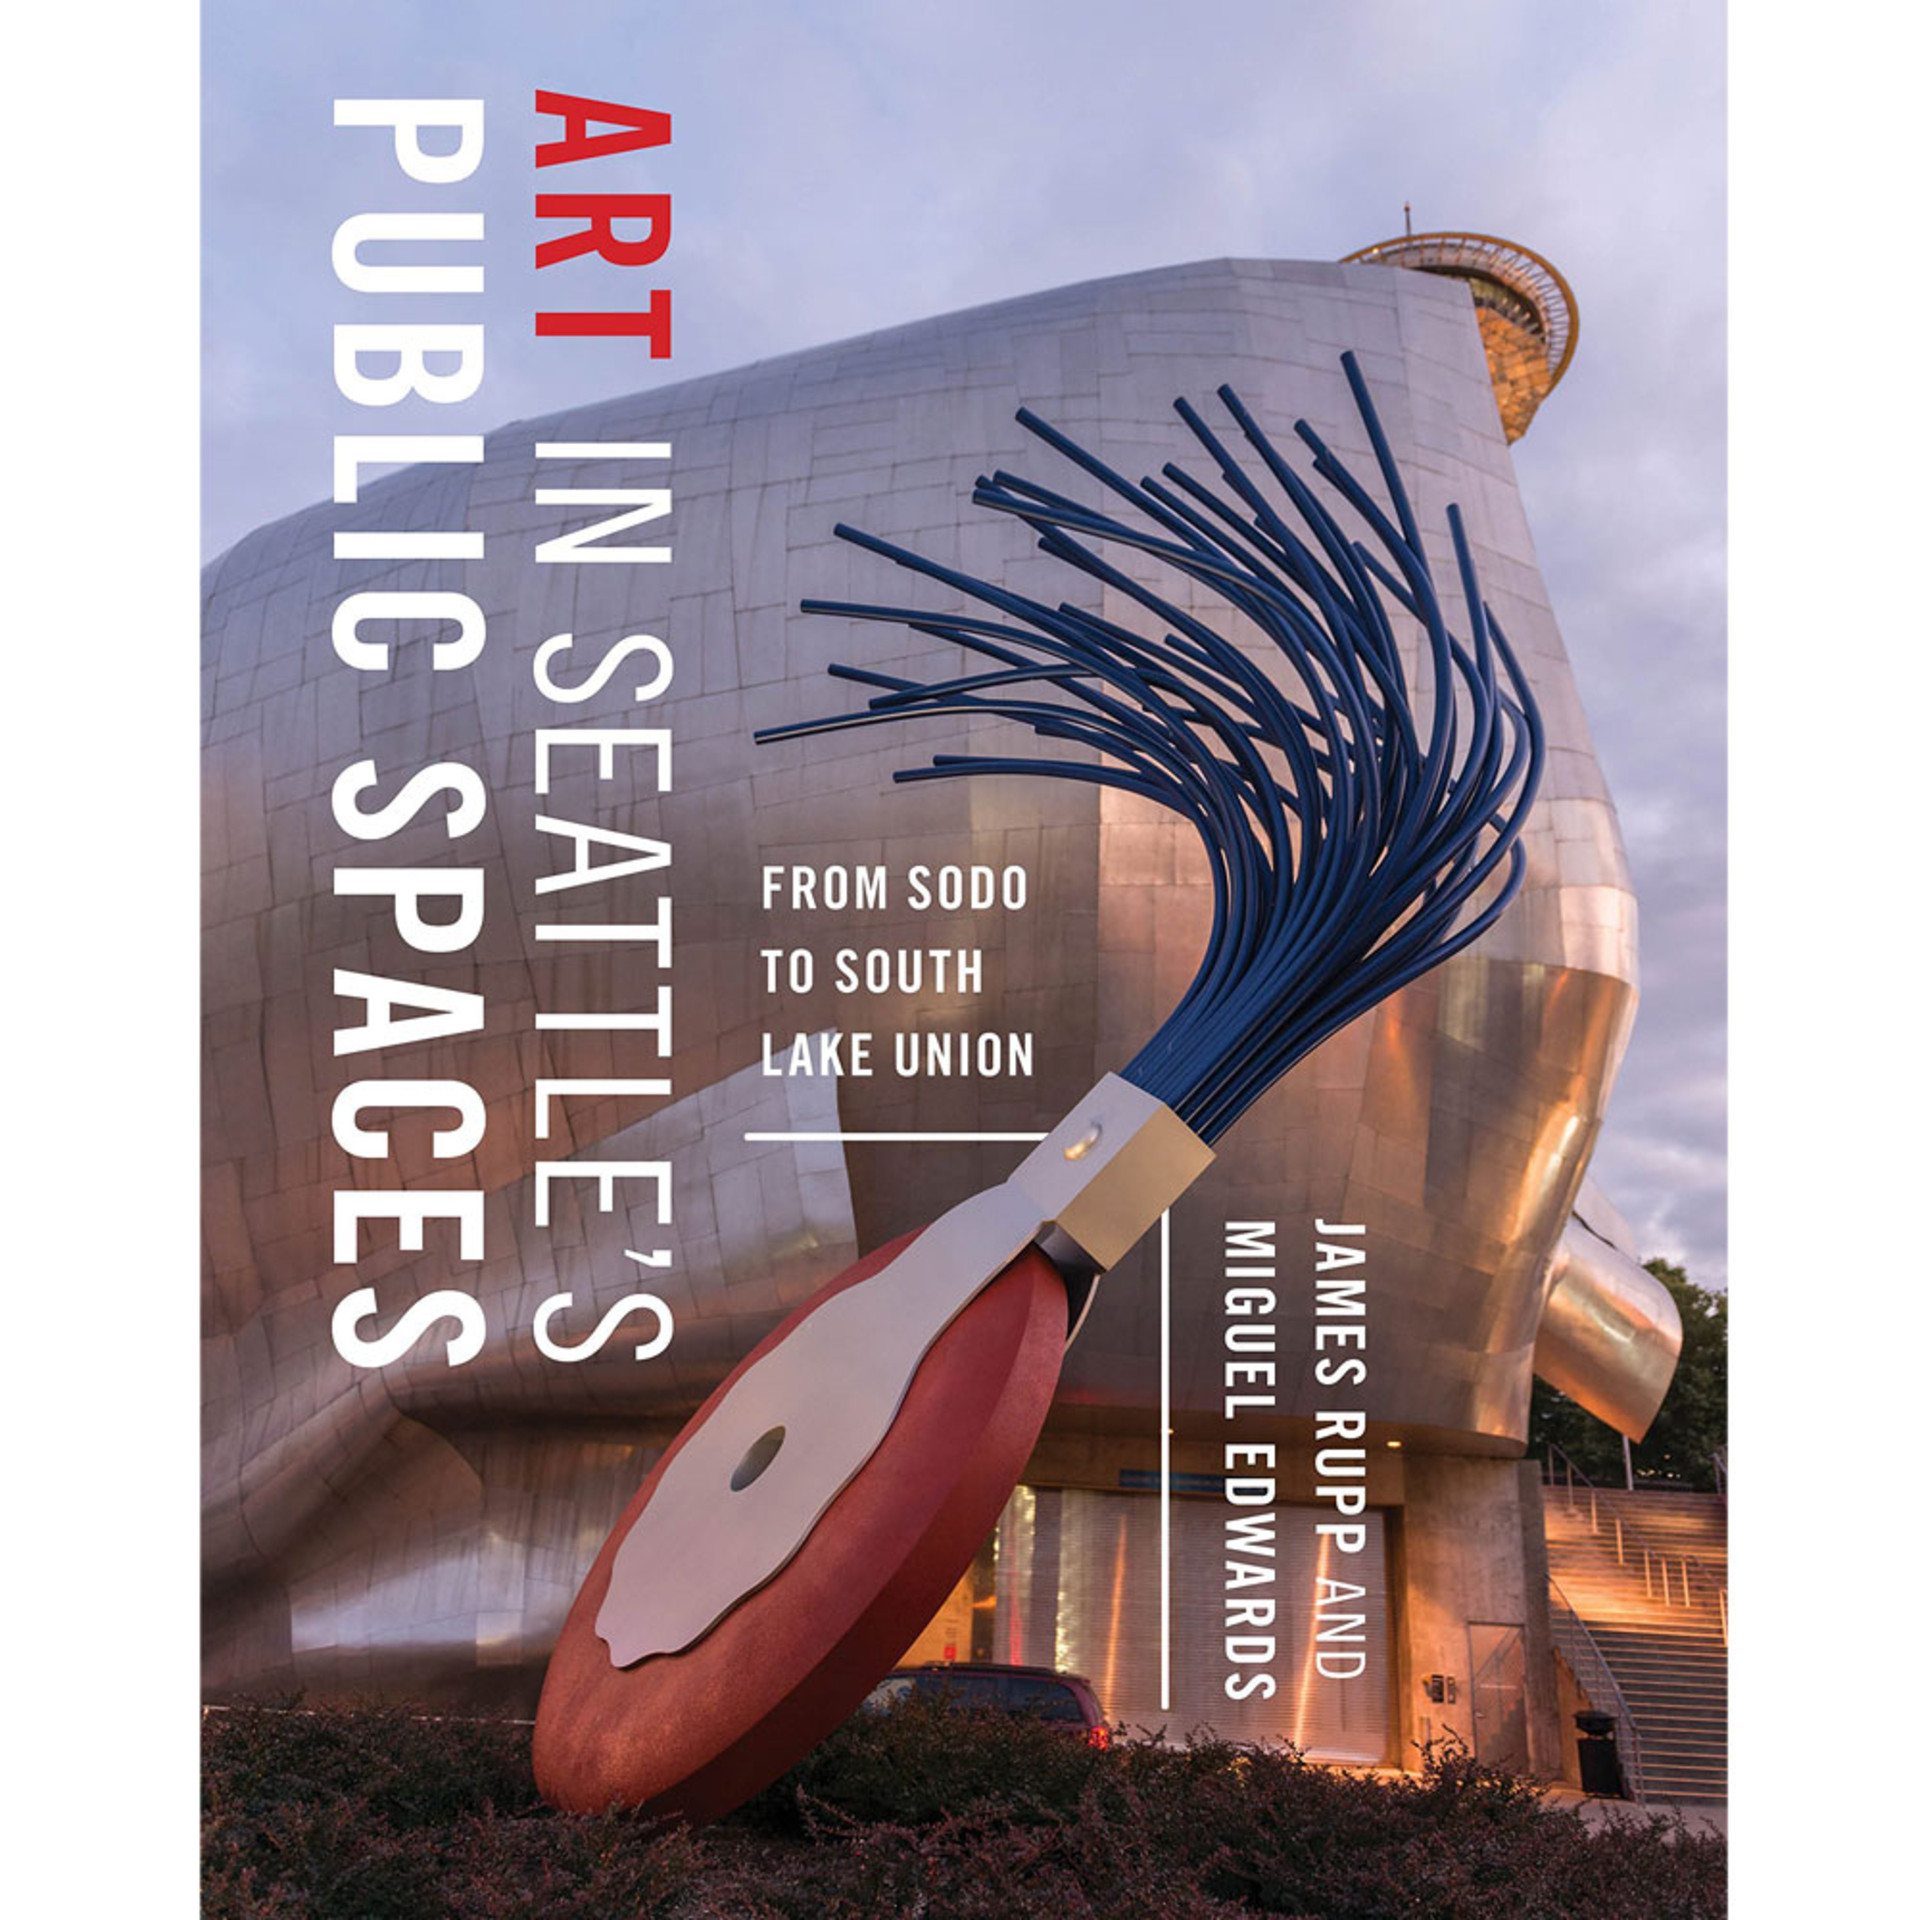 Art in Seattle's Public Spaces by James M. Rupp and Miguel Edwards